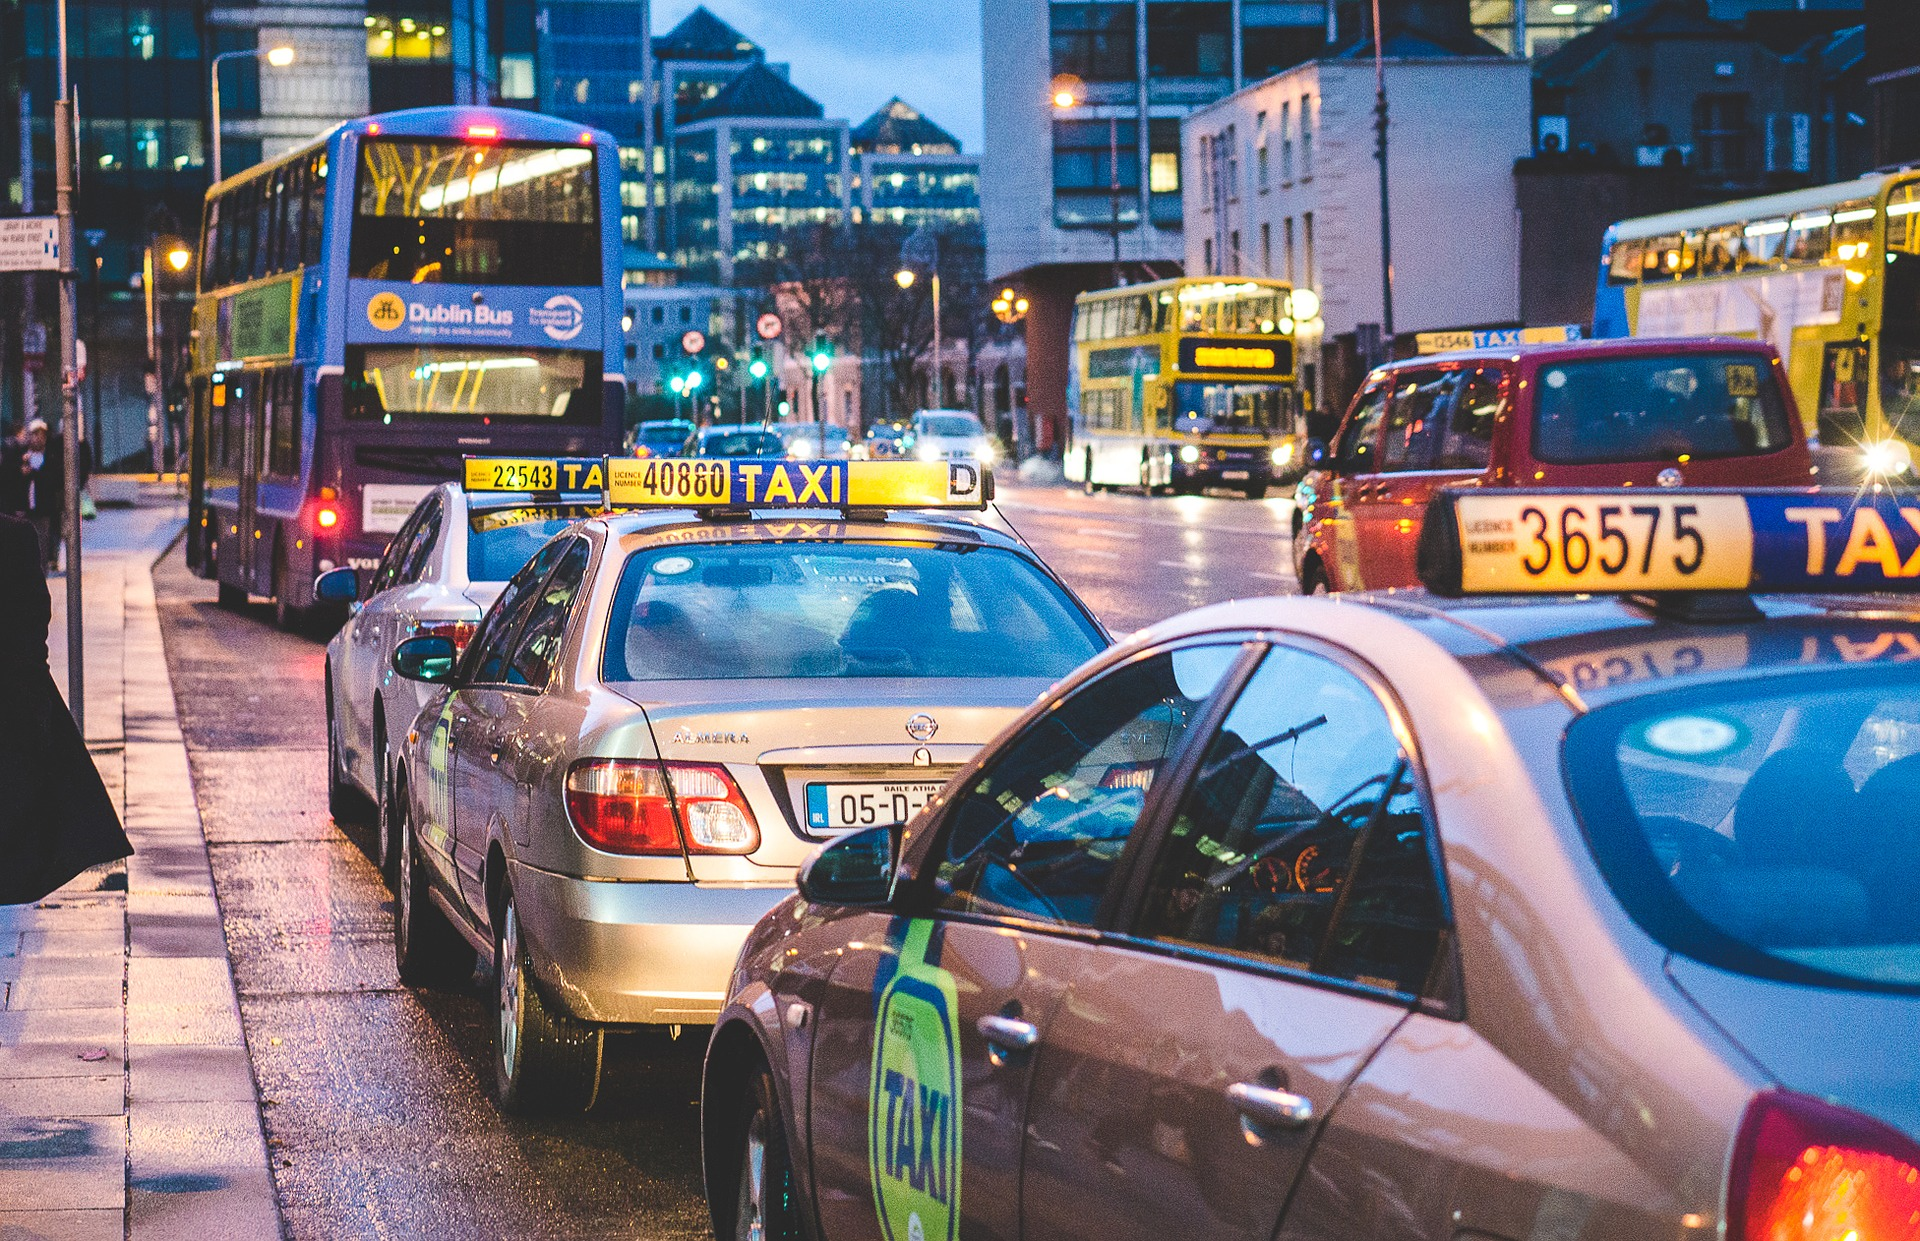 Image of taxis in Dublin